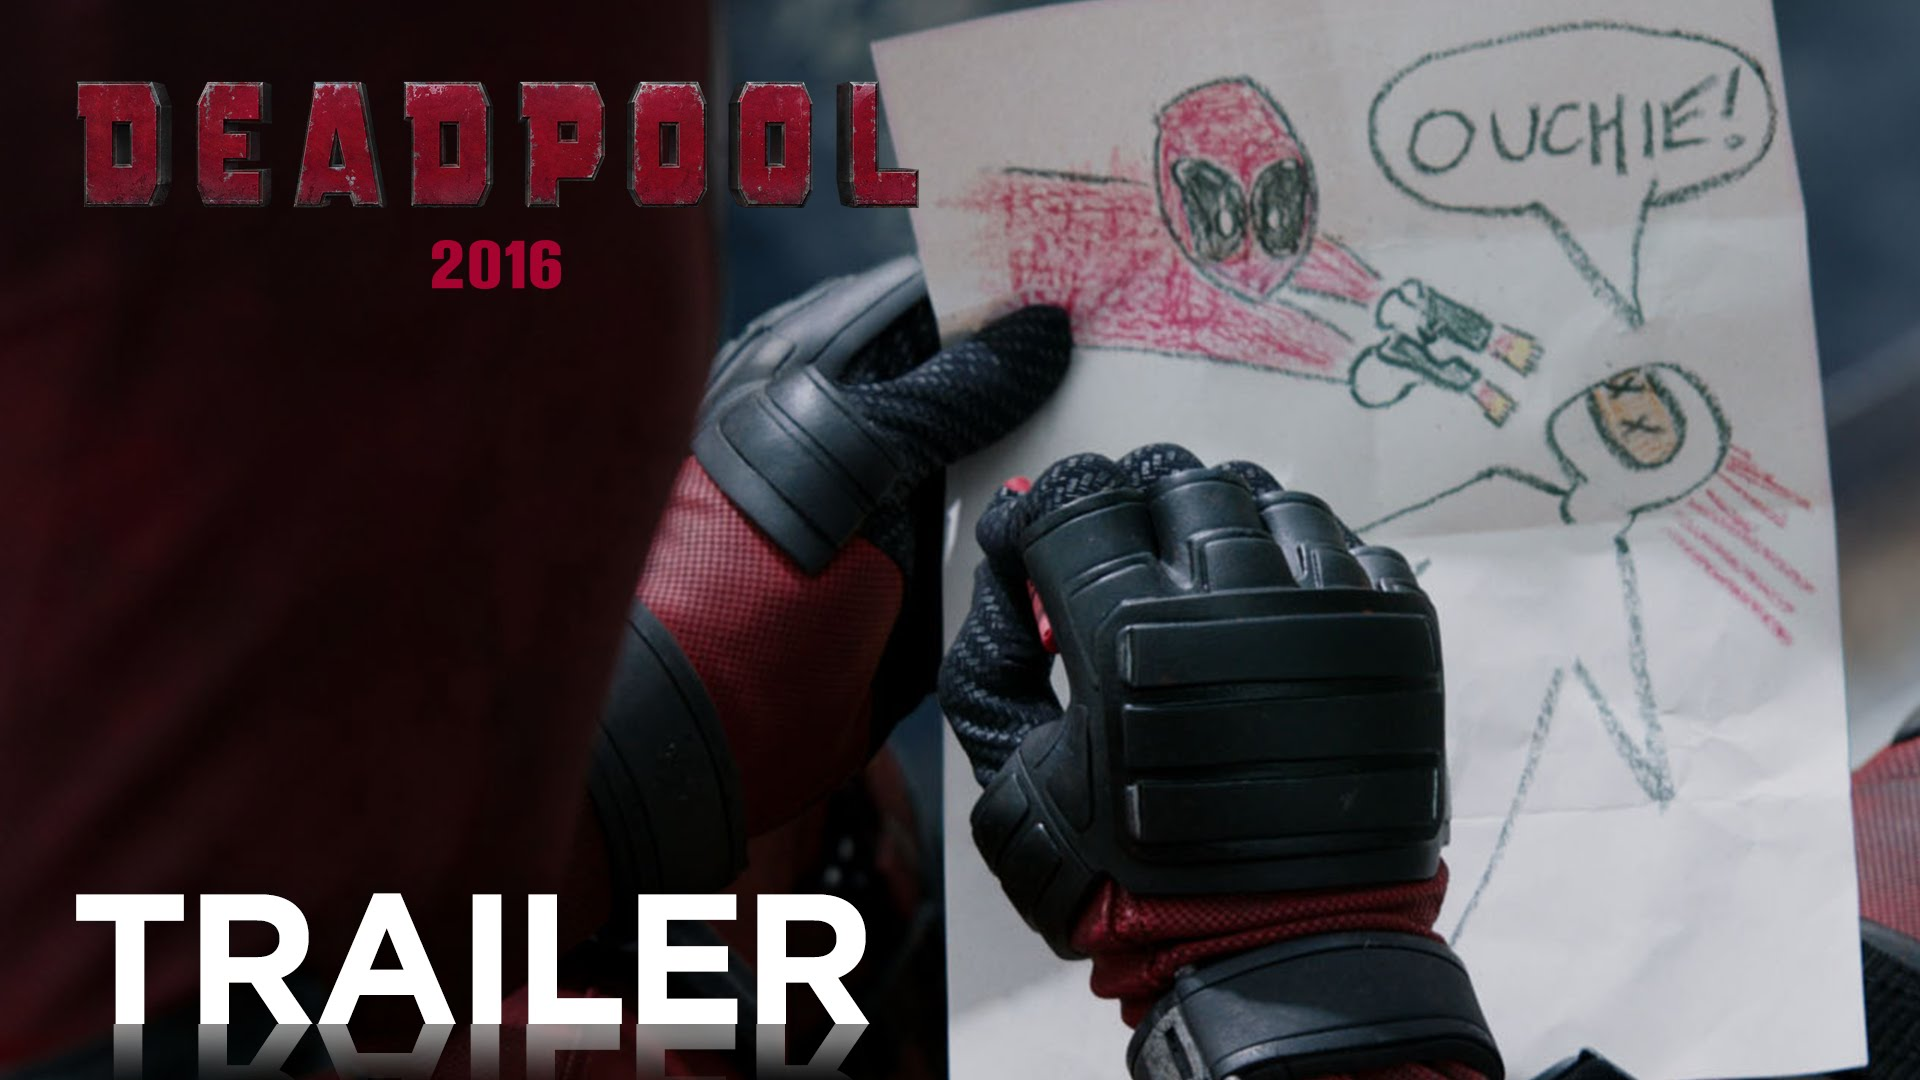 VIDEO: OPASAN ANTIJUNAK Pogledajte trailer za film Deadpool koji je snimio Ryan Reynolds